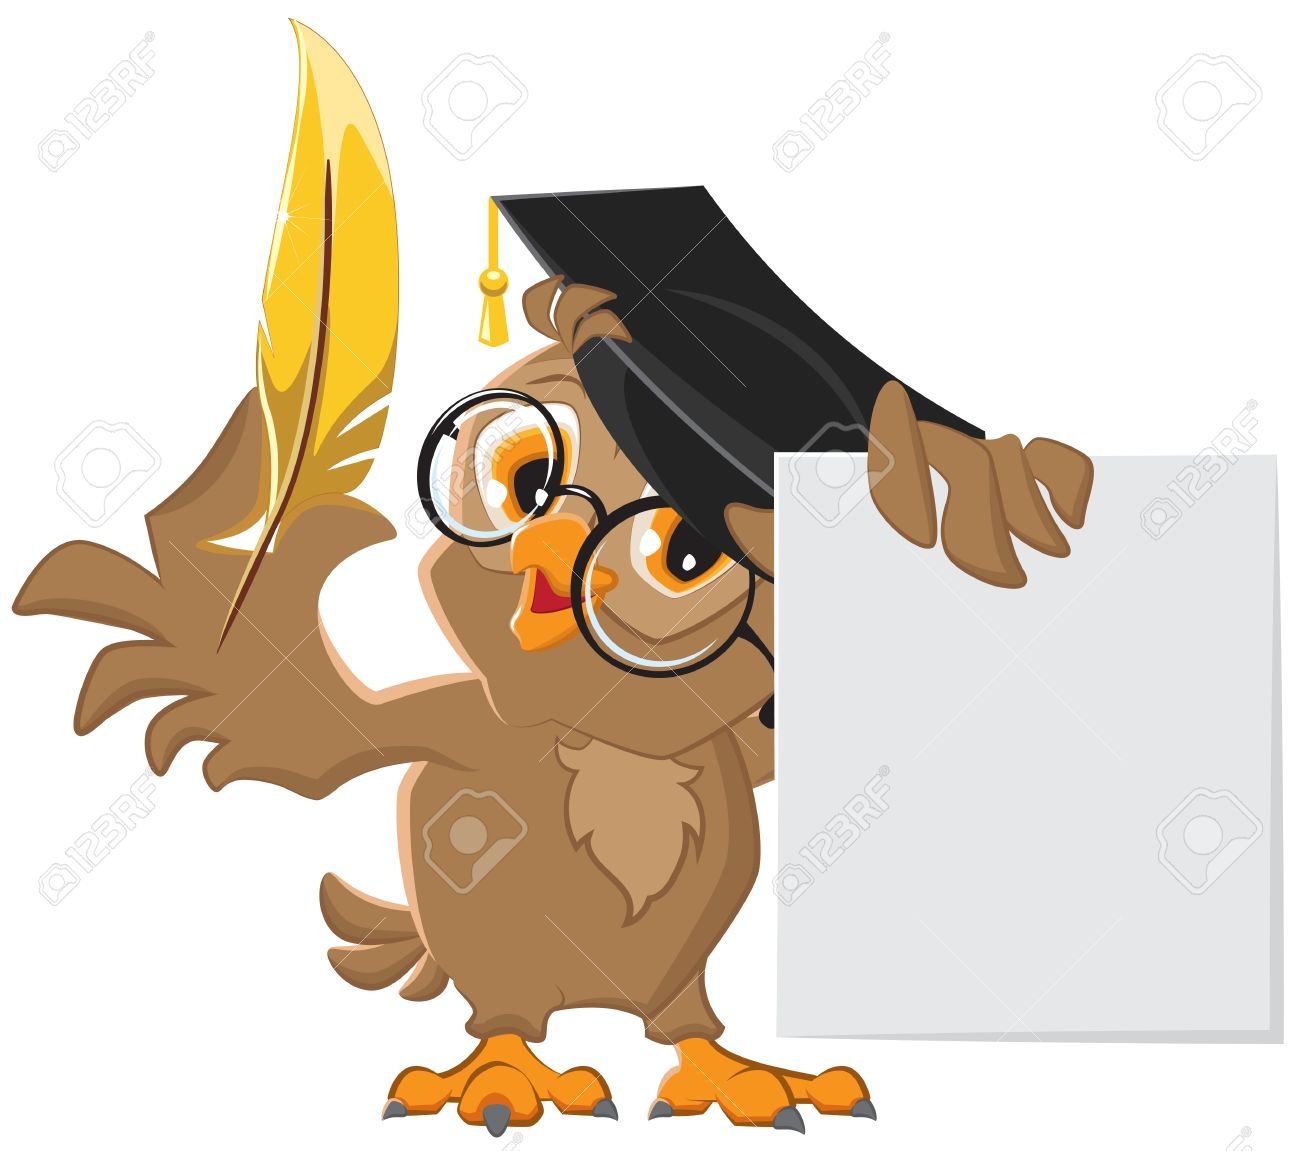 Wise owl holding a golden pen and a sheet of paper. Vector cartoon illustration - 32052778